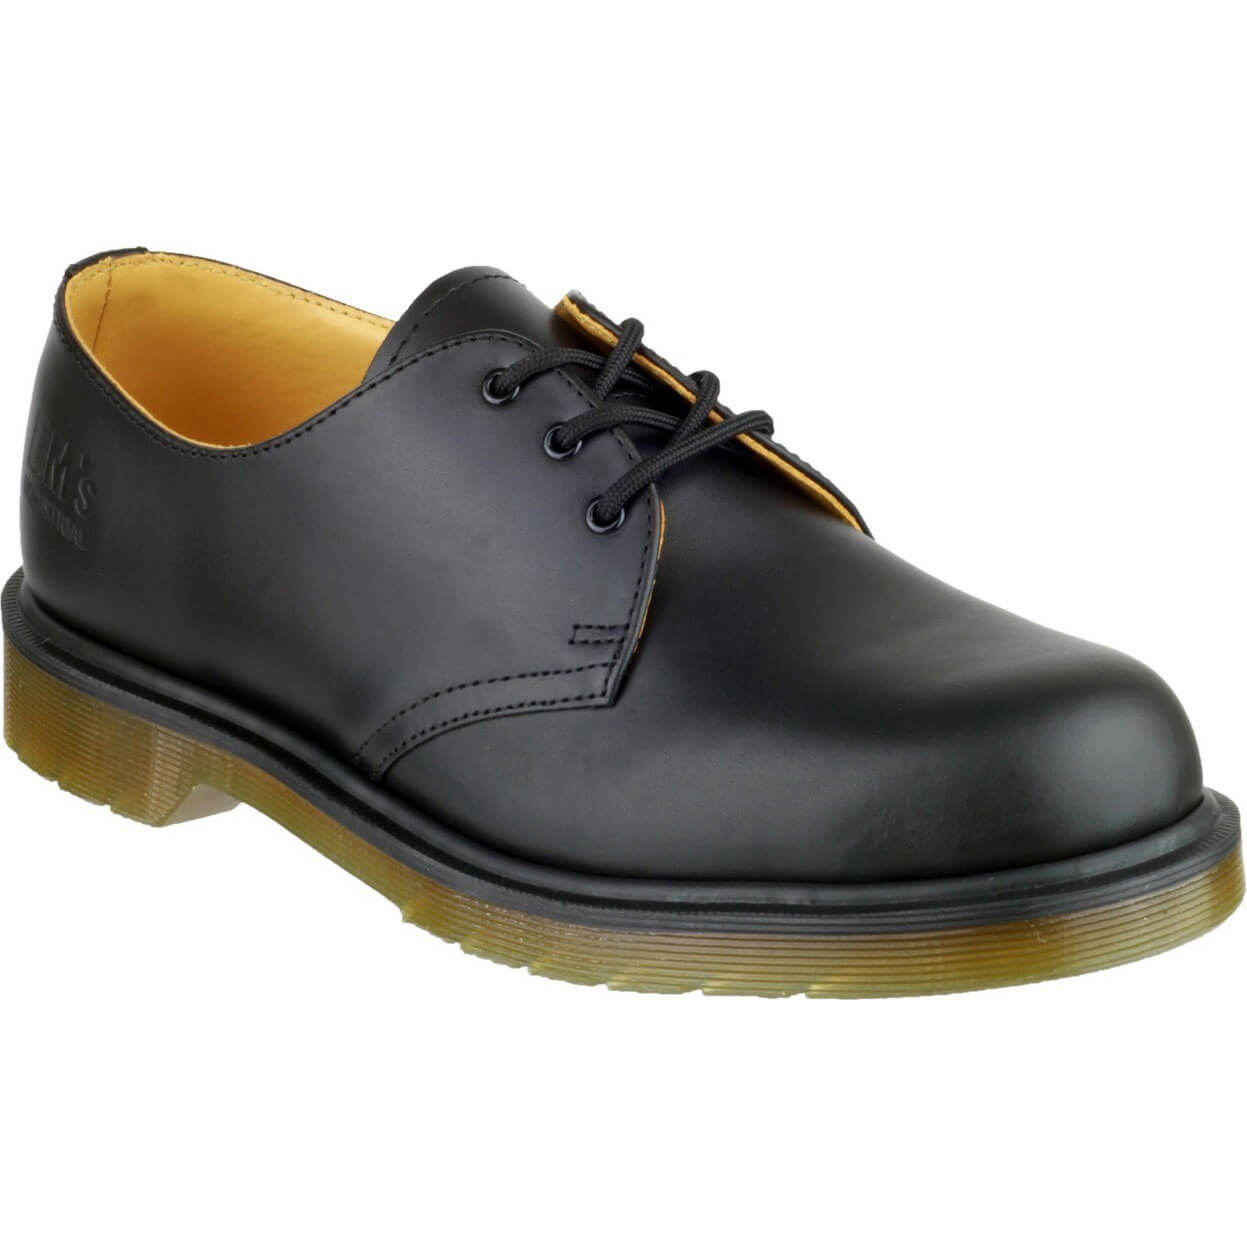 Image of Dr Martens B8249 Lace-Up Leather Shoe Black Size 6